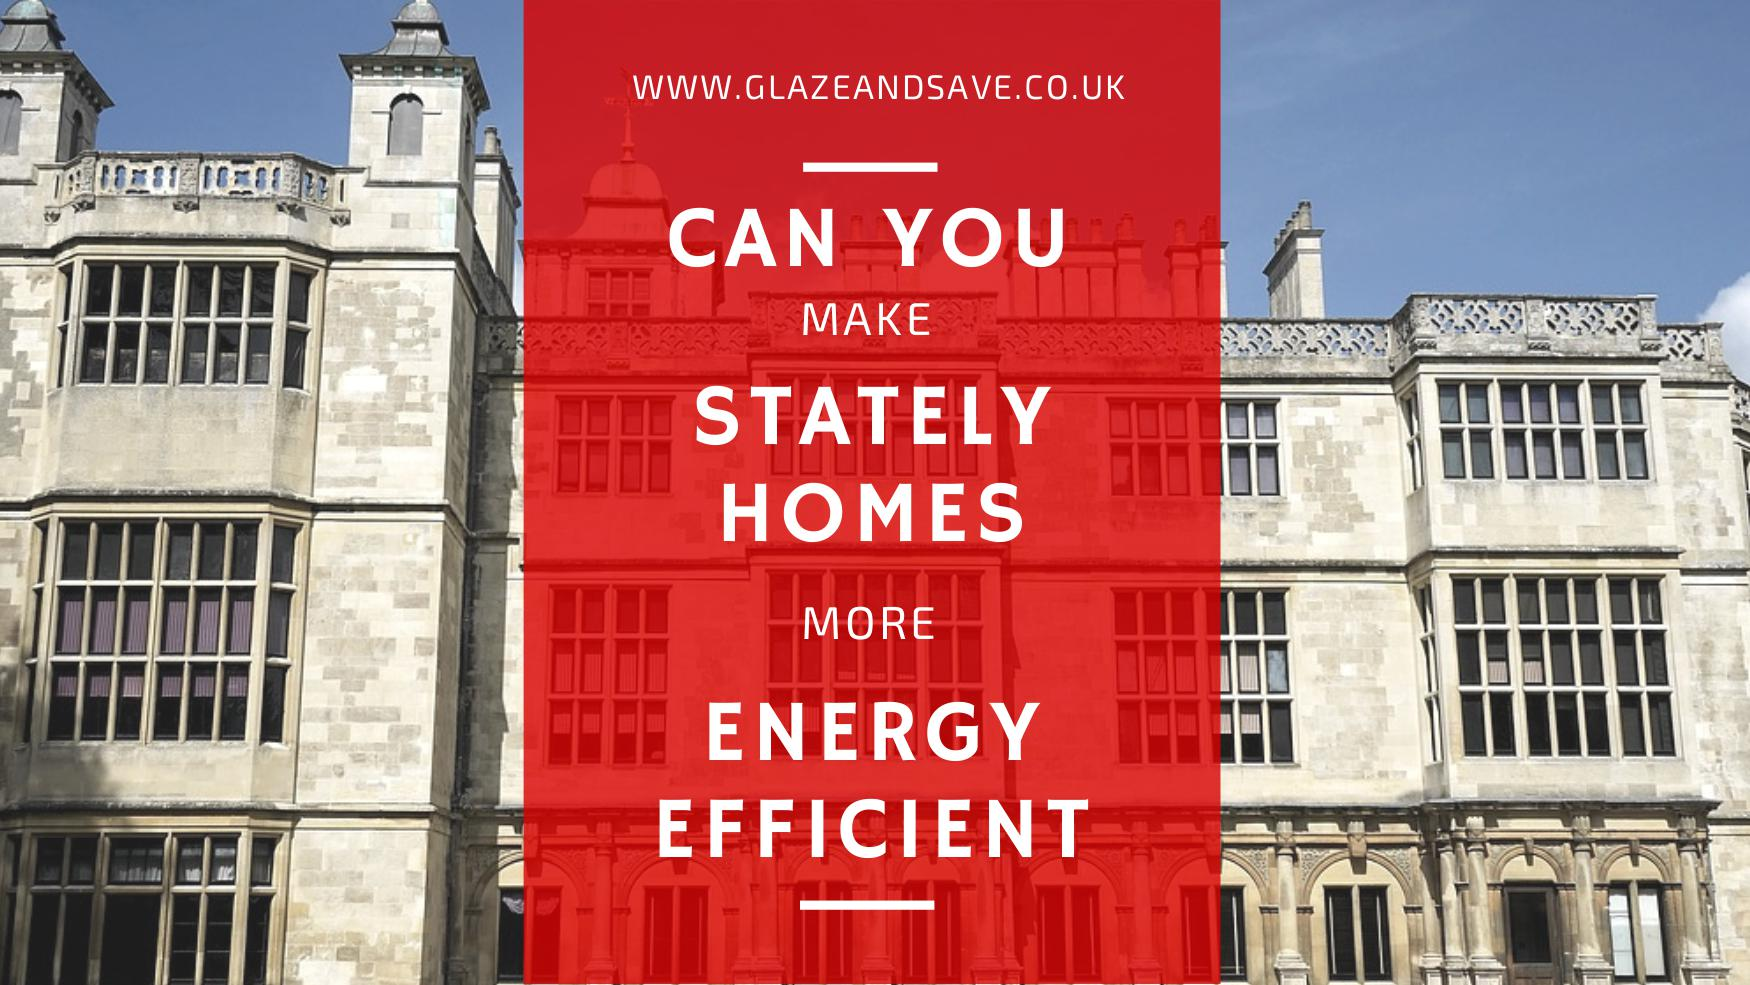 Can you make stately homes energy efficient by glaze and save bespoke magnetic secondary glazing and draught proofing specialists.